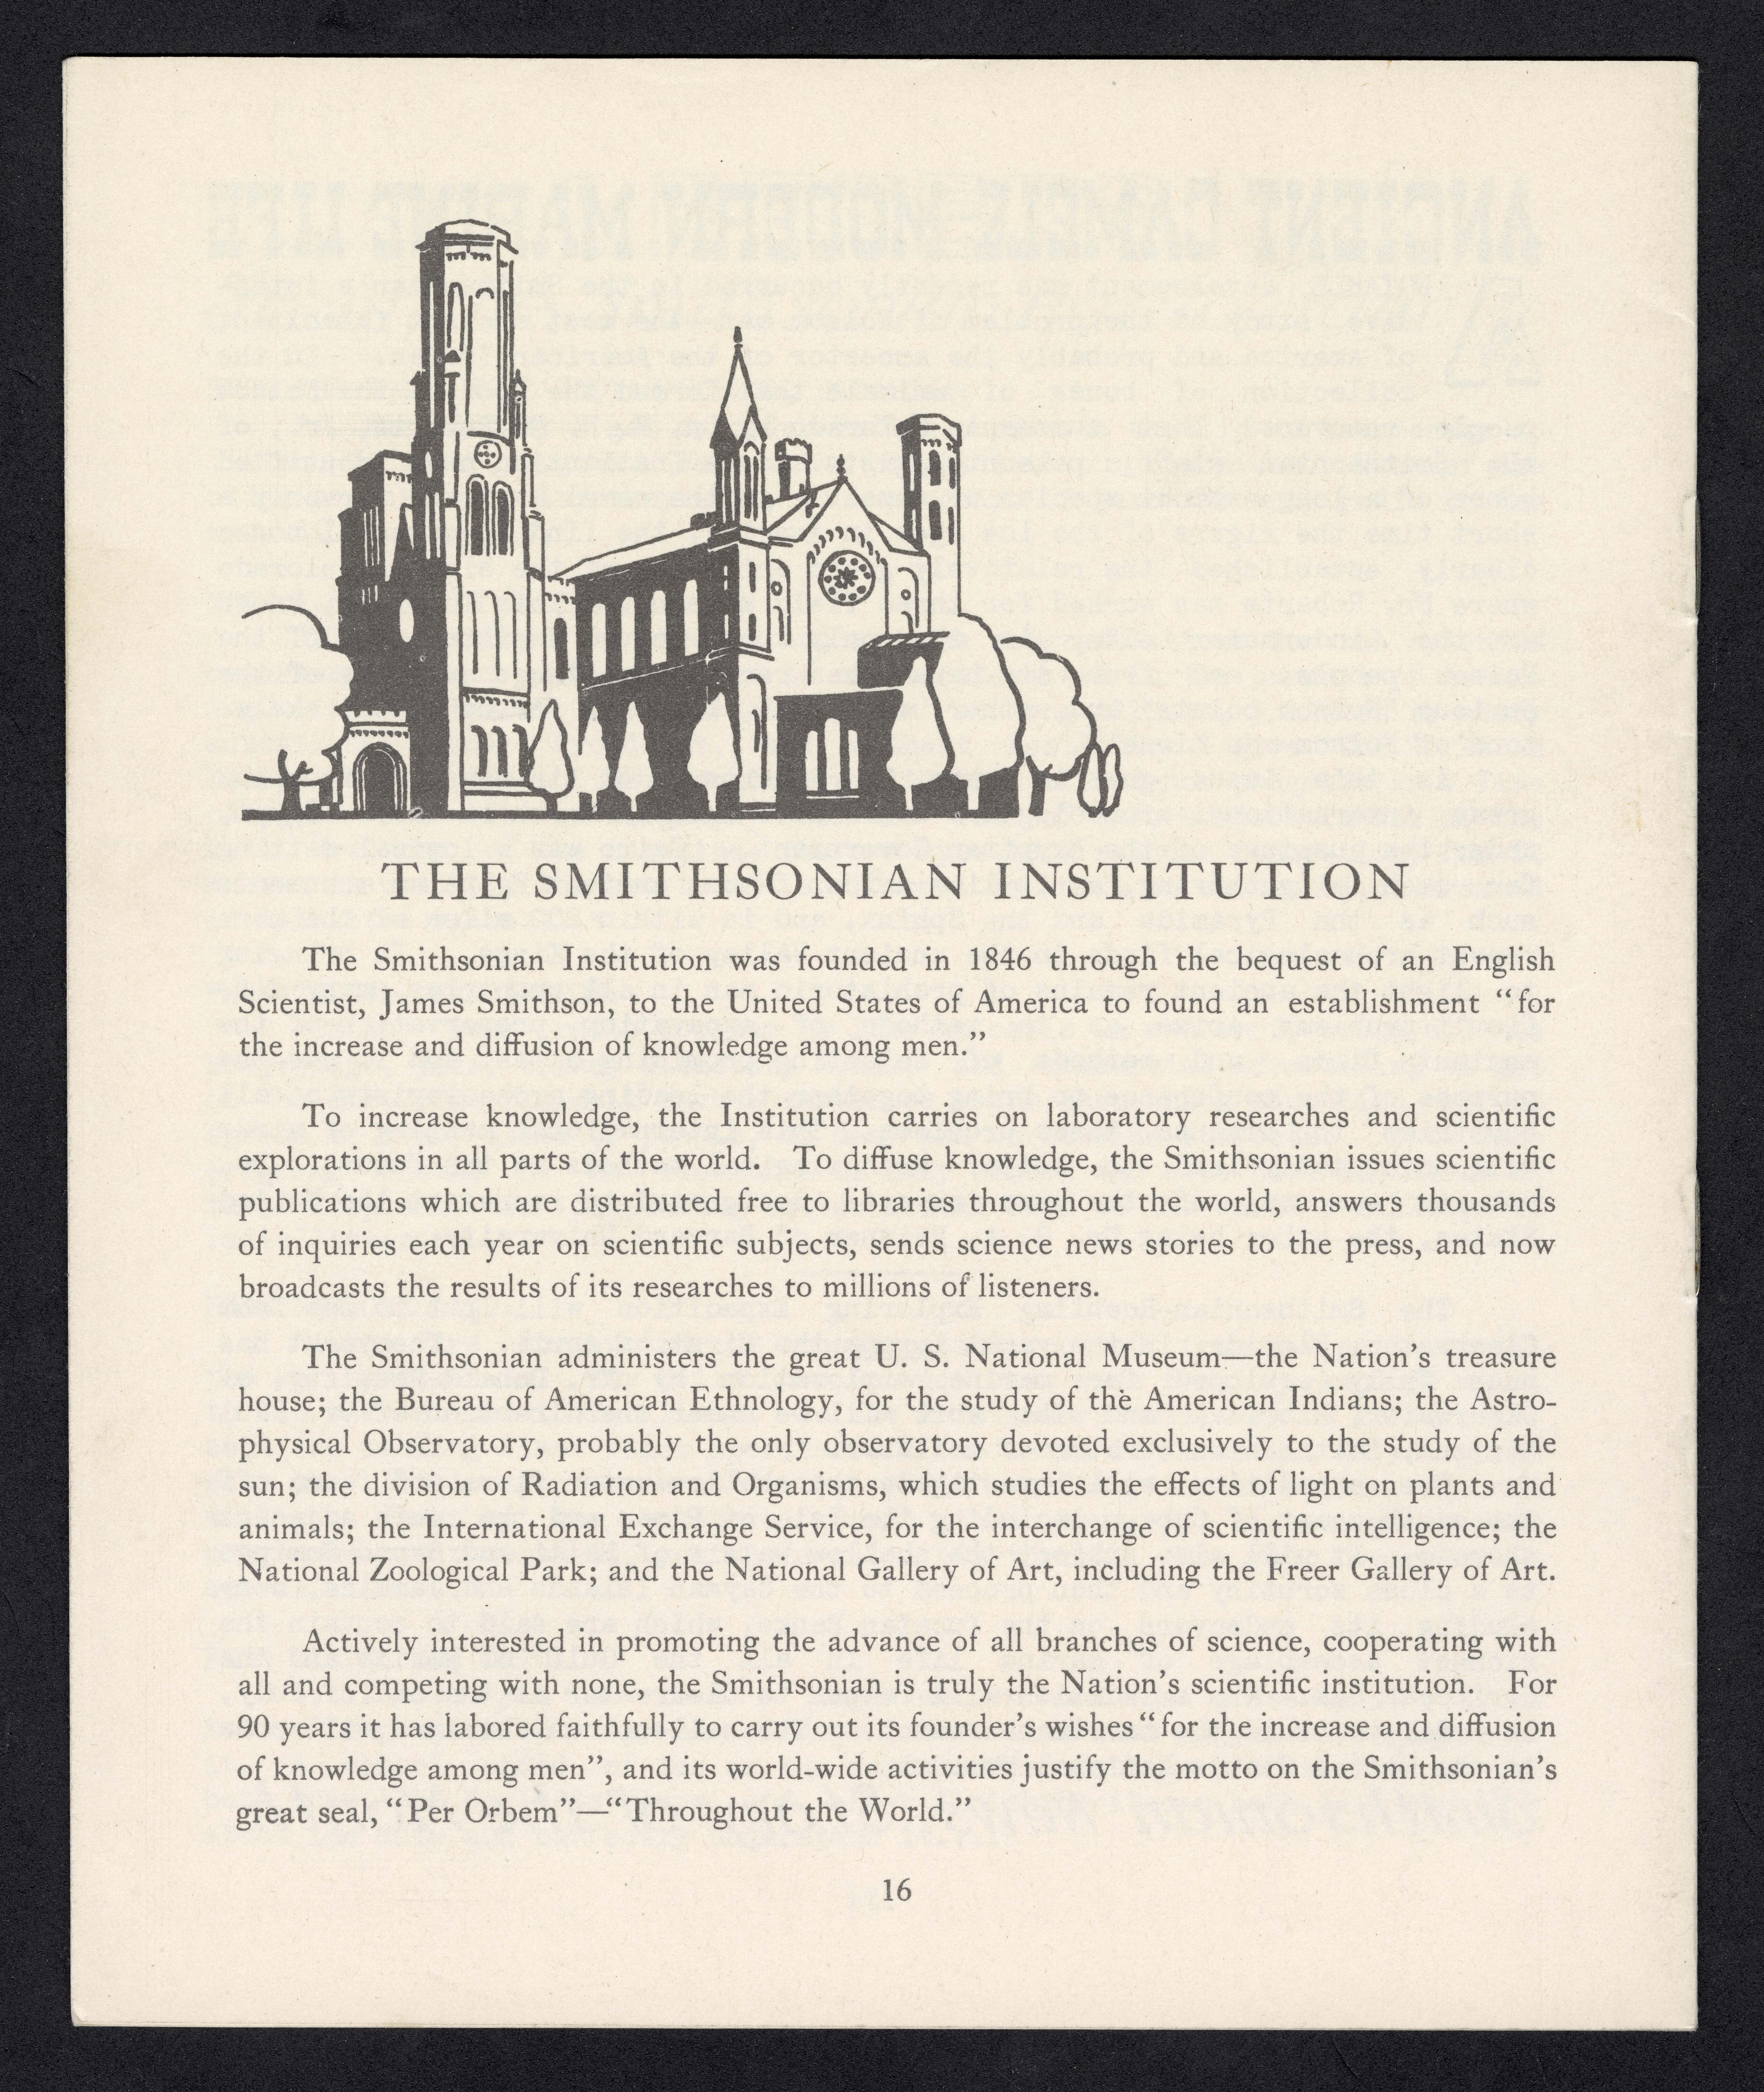 Page 16 is a brief history of the Smithsonian with a sketch of the Smithsonian Institution Building.